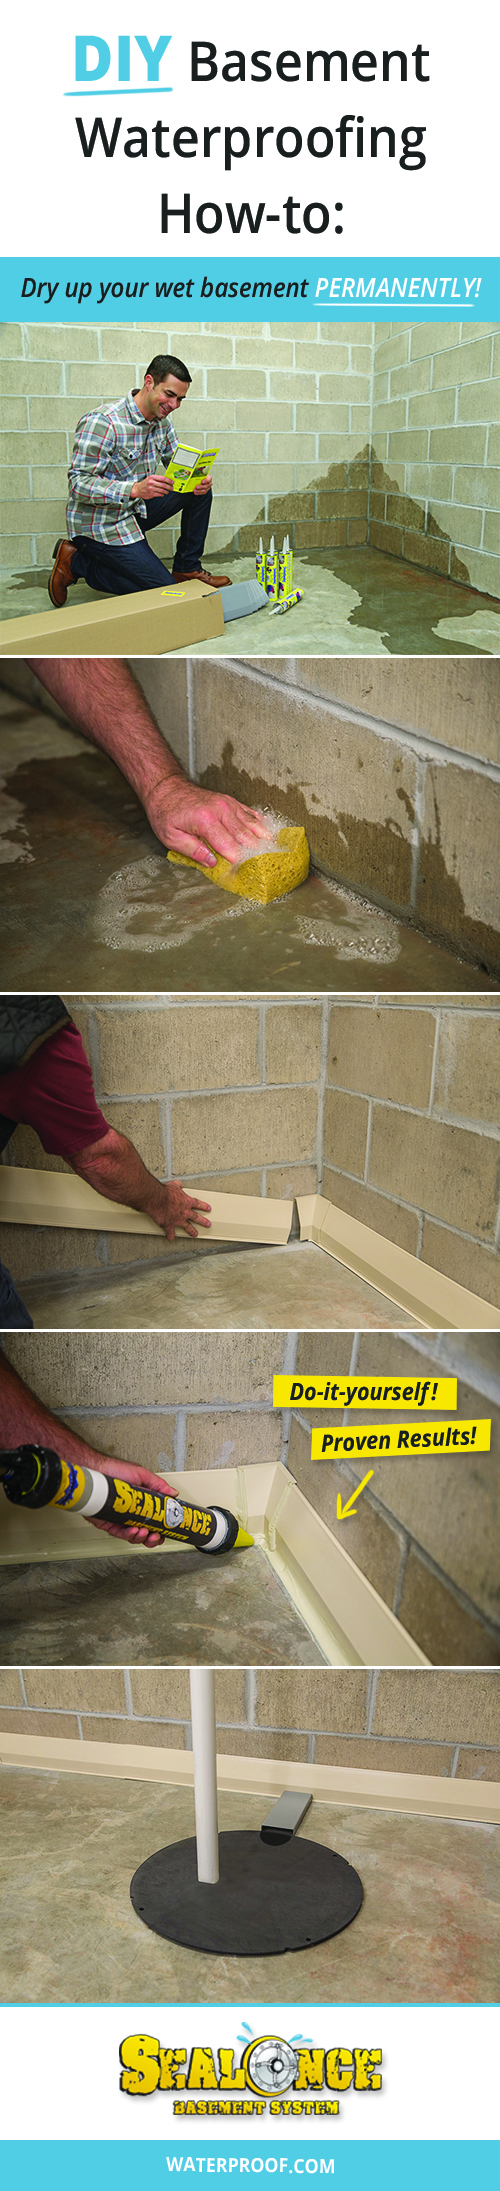 Step DIY Basement Waterproofing Guide How To Dry Up Your Wet - Basement framing guide